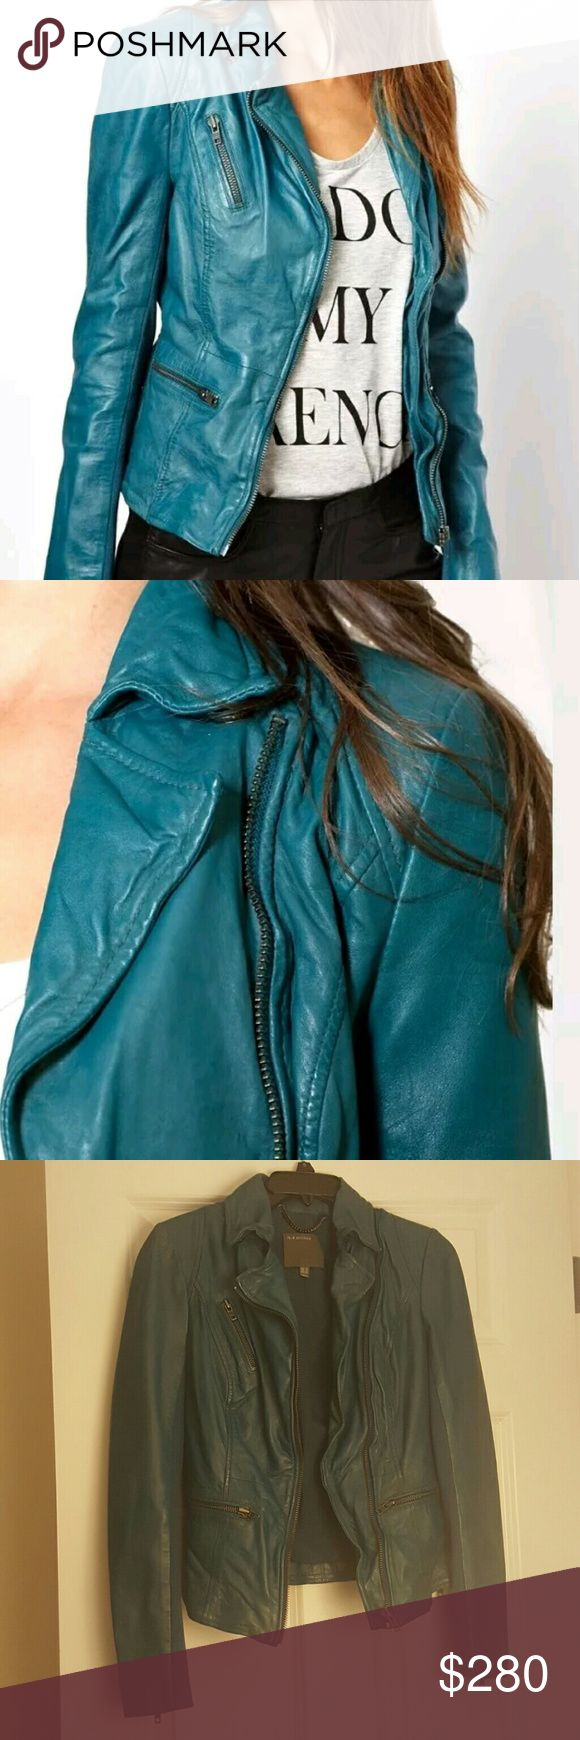 MUUBAA sirius teal leather jacket free people us 4 This is brand new, NEVER WORN without tags. Muubaa leather jackets are sold at free people often. Buttery soft leather. Price is Firm. Please message any questions Smoke and Pet free home Muubaa Jackets & Coats